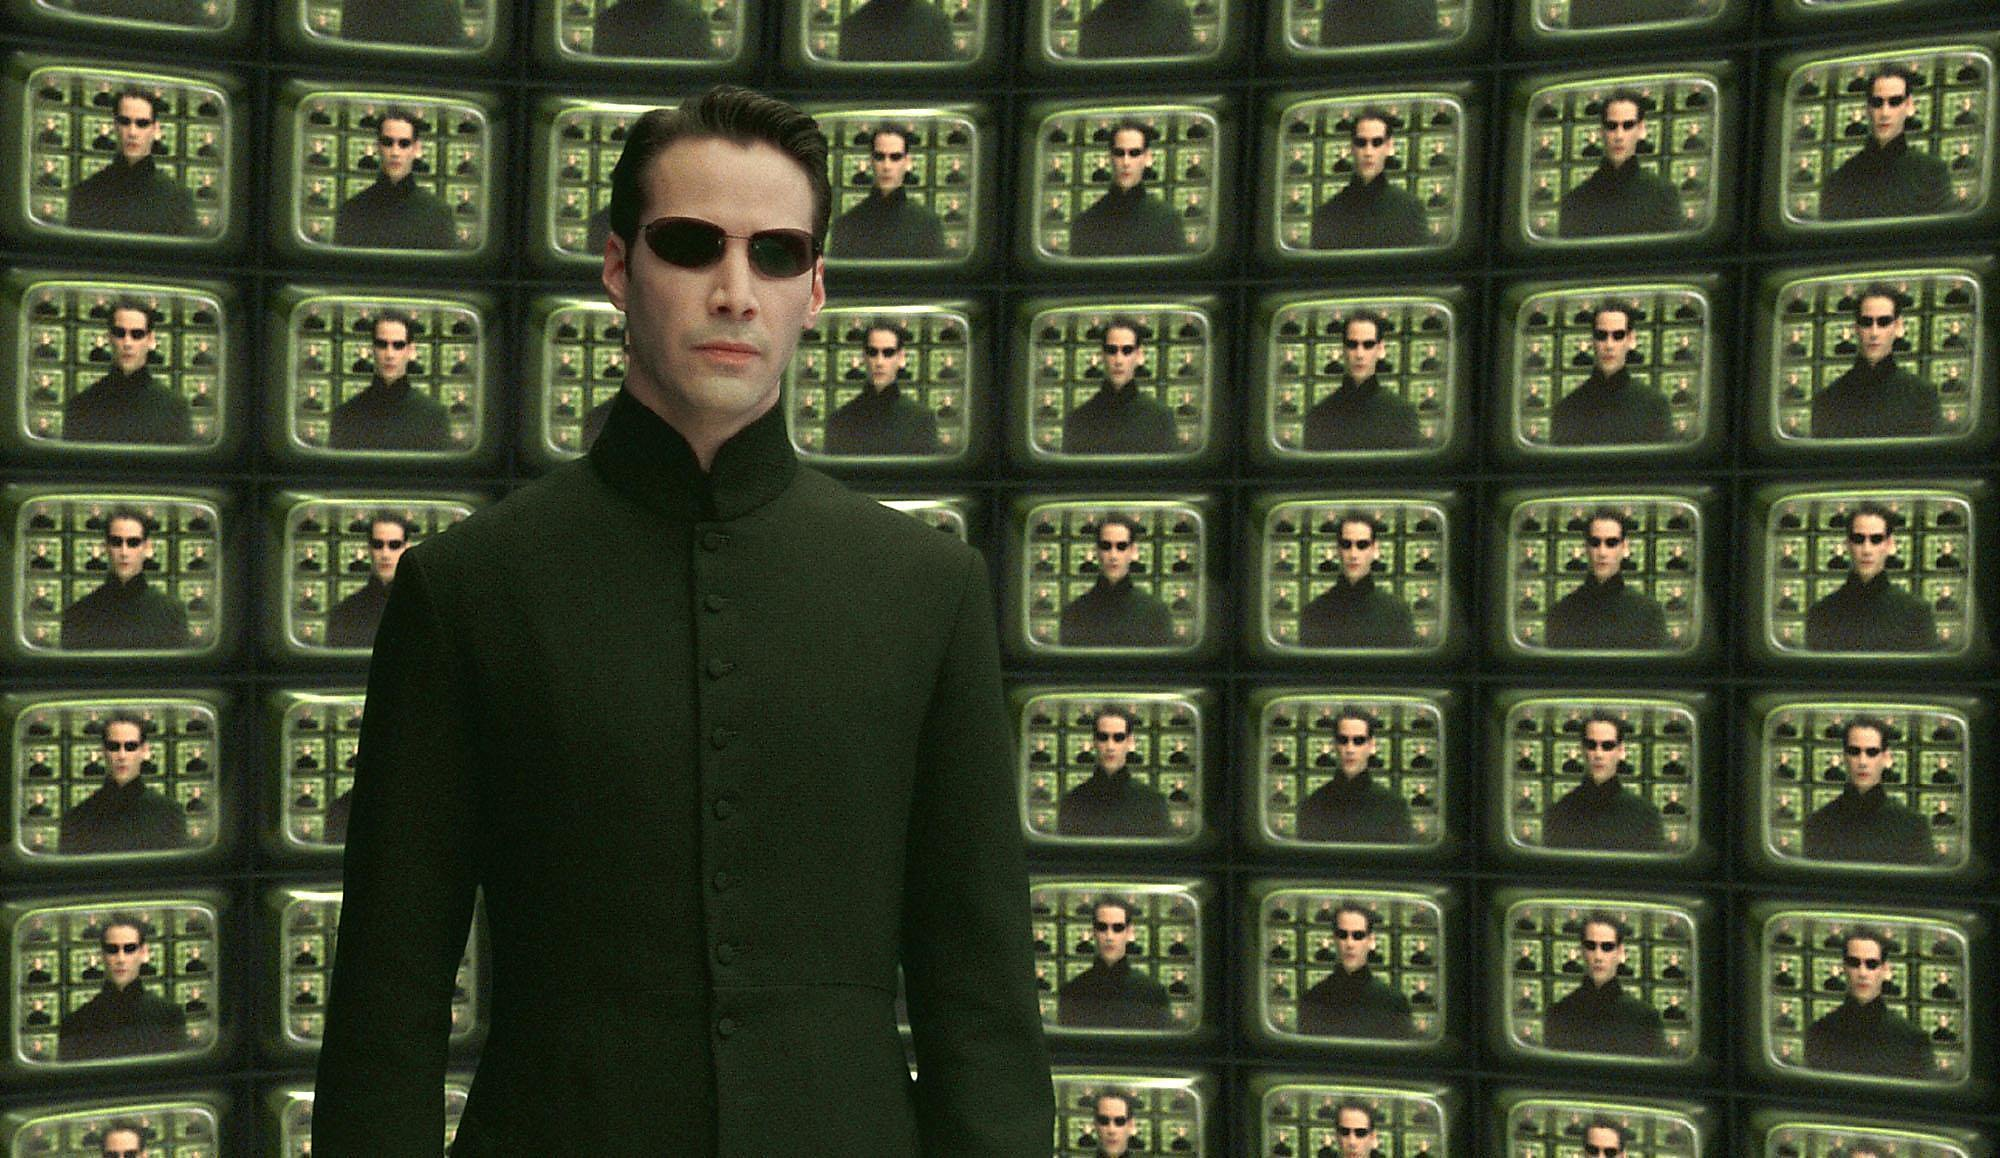 Matrix 4 extras asked to dress as 'homeless types,' required to run all night for minimum wage